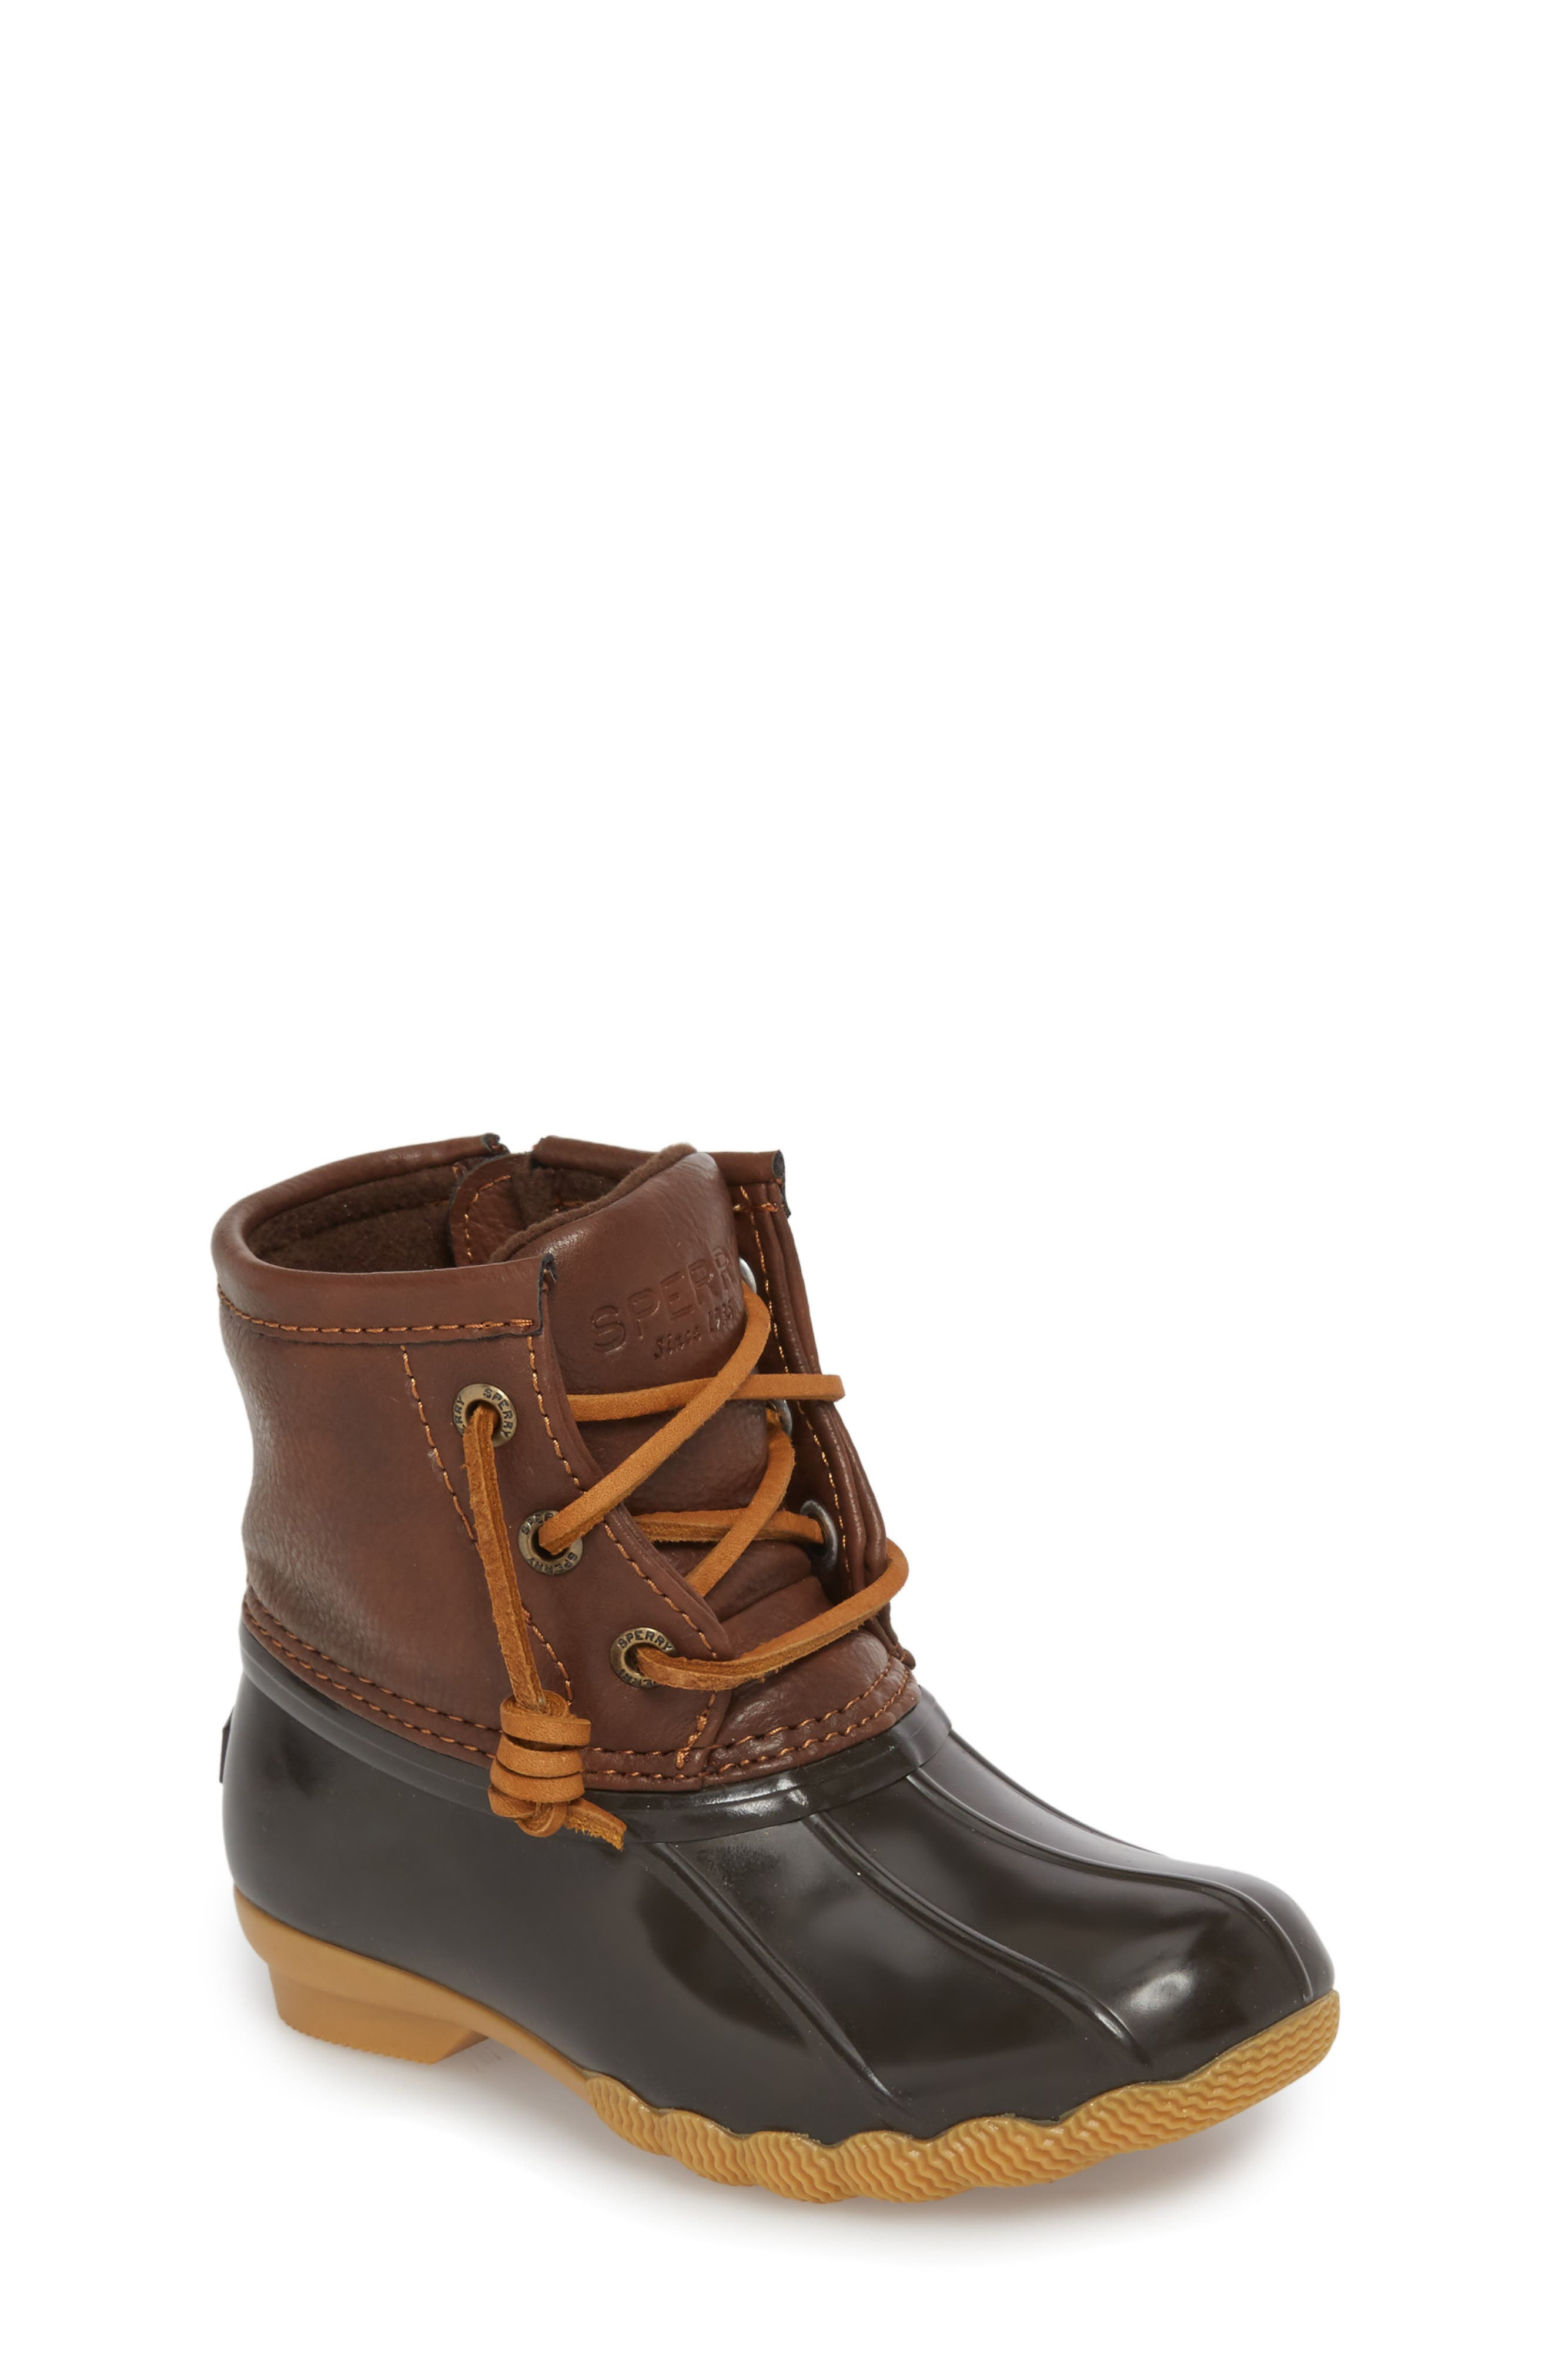 Saltwater Duck Boot,                             Main thumbnail 1, color,                             BROWN/ BROWN